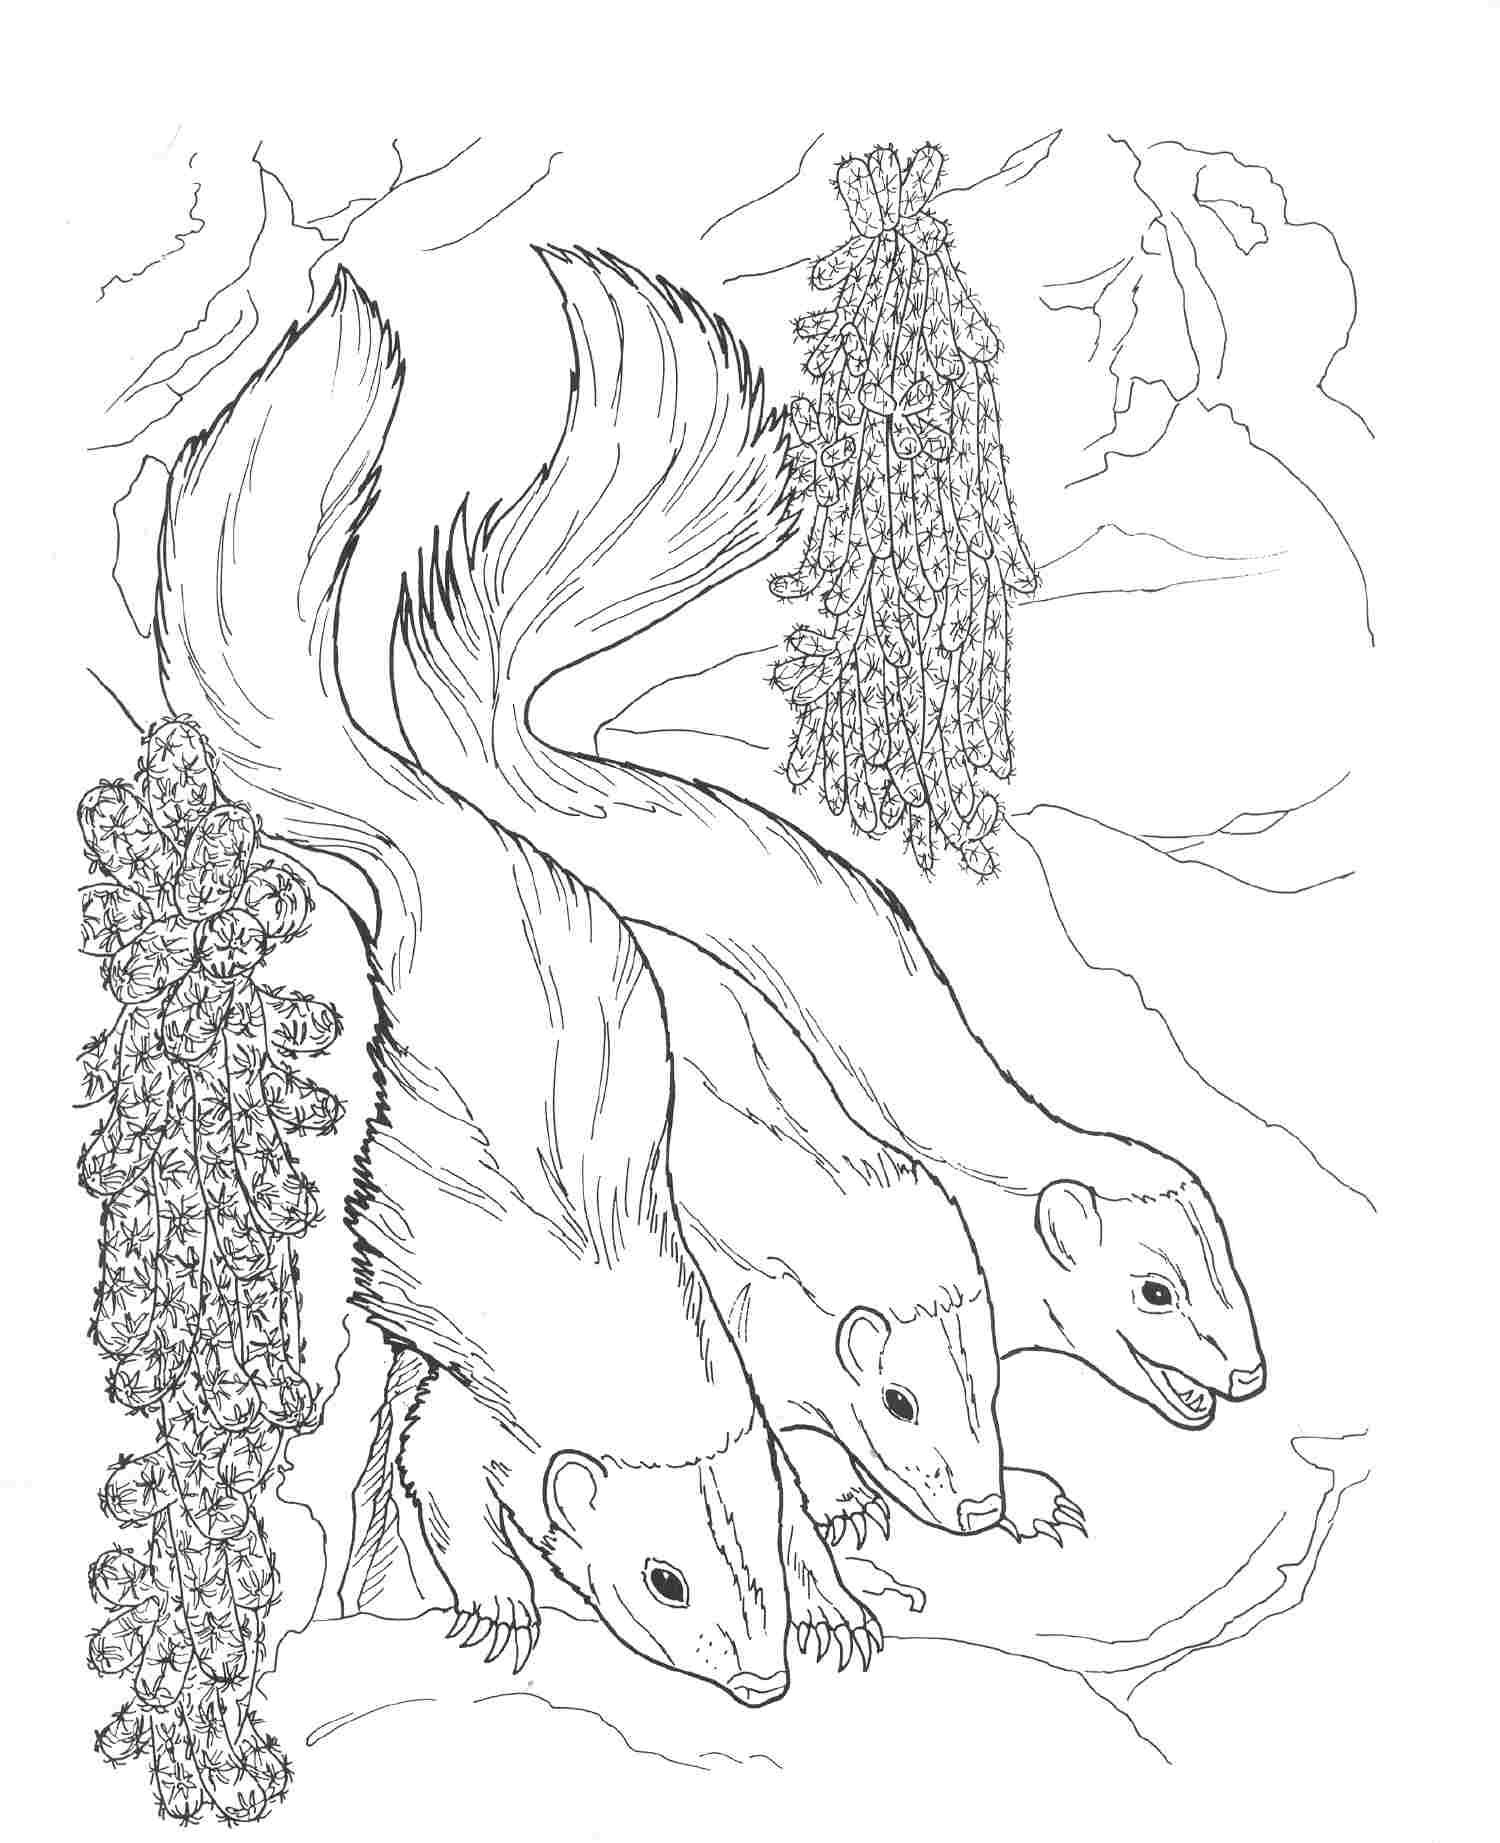 Free Coloring Pages Of Nocturnal Animals : Free coloring pages of animals at night